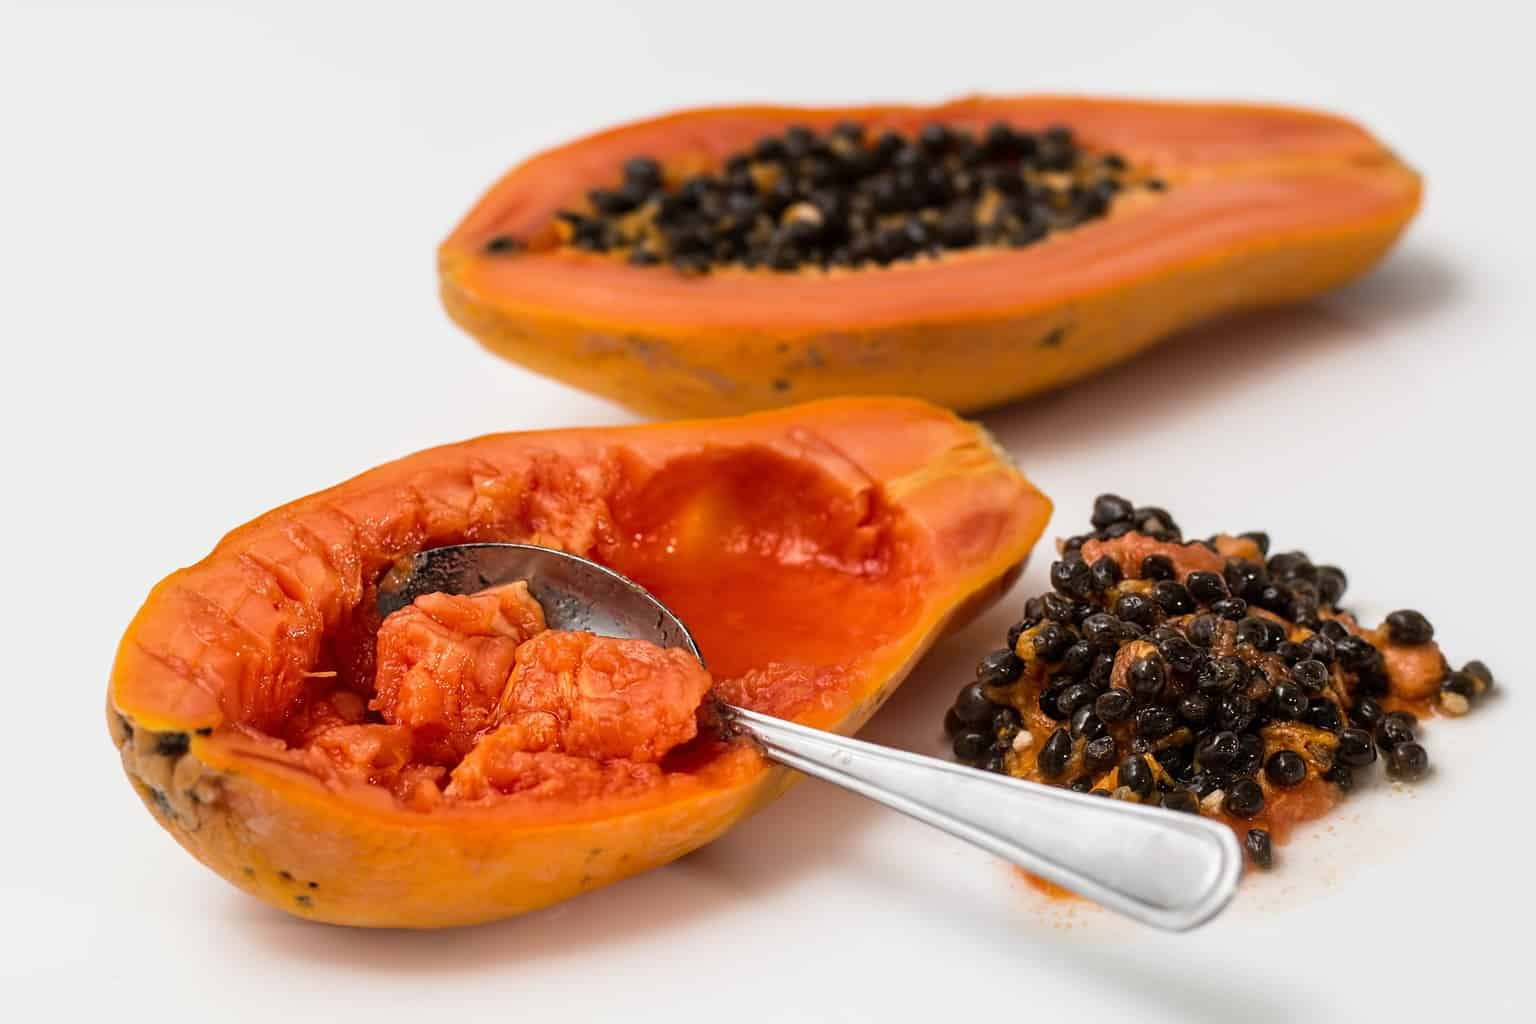 Opened ripe papaya with the seeds out